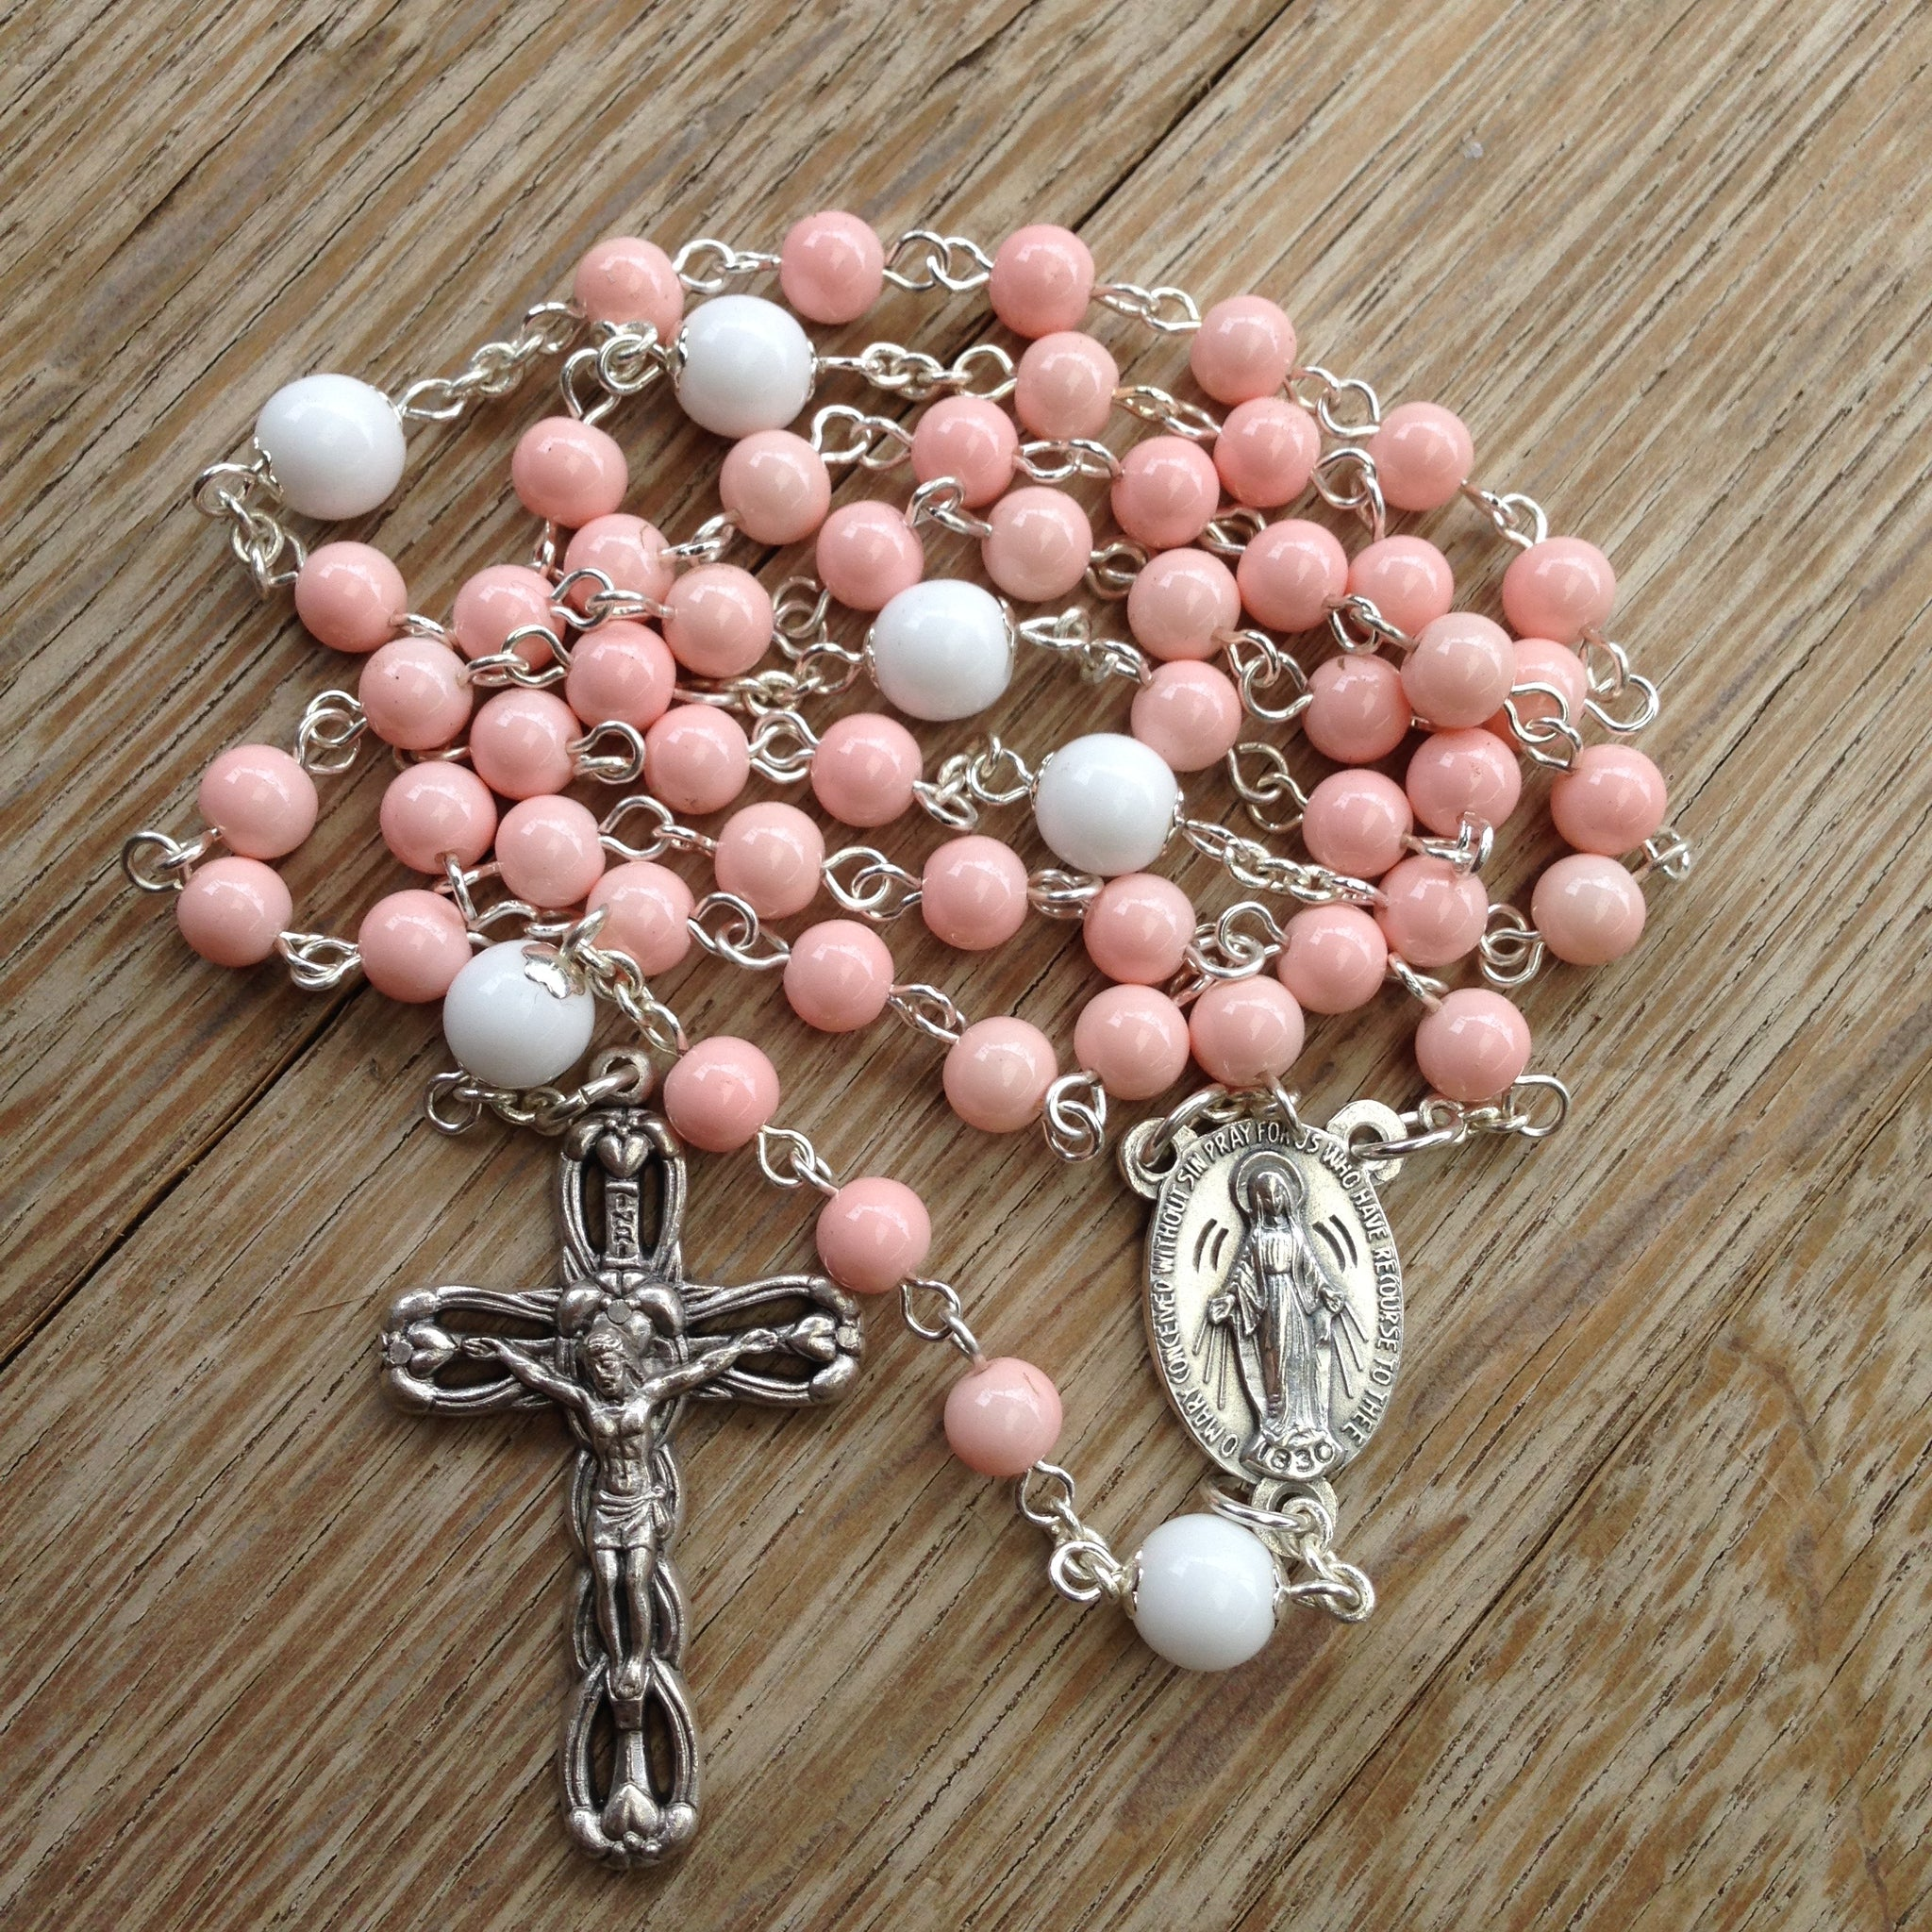 Miraculous Medal pink rosary